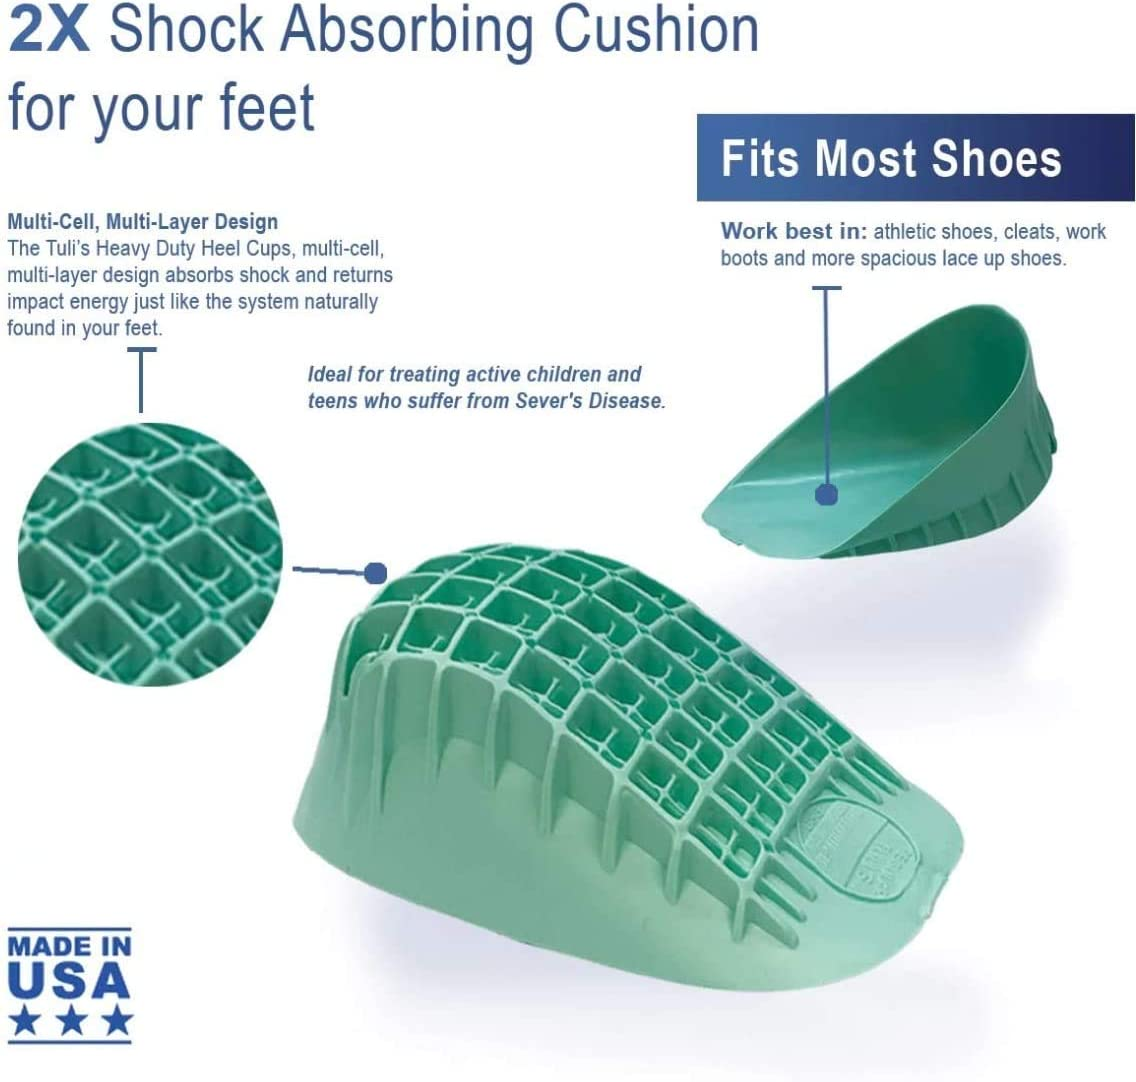 Small Tuli/'s Heavy Duty Heel Cups Severs Disease and Heel Pain Relief Green Pro Heel Cup Shock Absorption and Cushion Inserts for Plantar Fasciitis